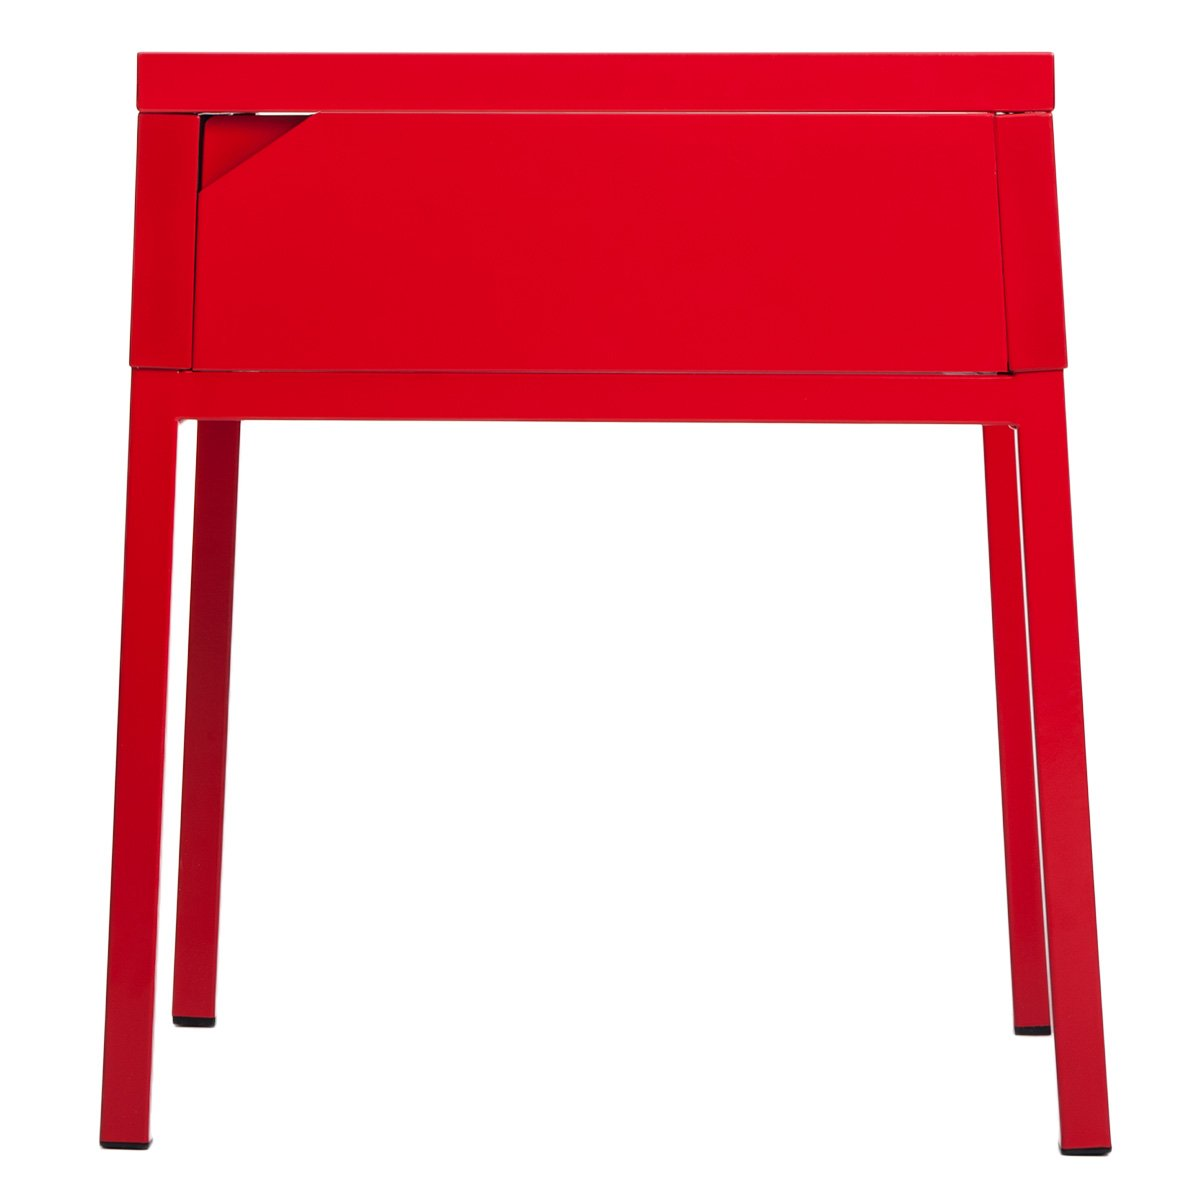 amazoncom merax metal end tablenightstand with one drawer  - amazoncom merax metal end tablenightstand with one drawer accent sidetable (red) kitchen  dining